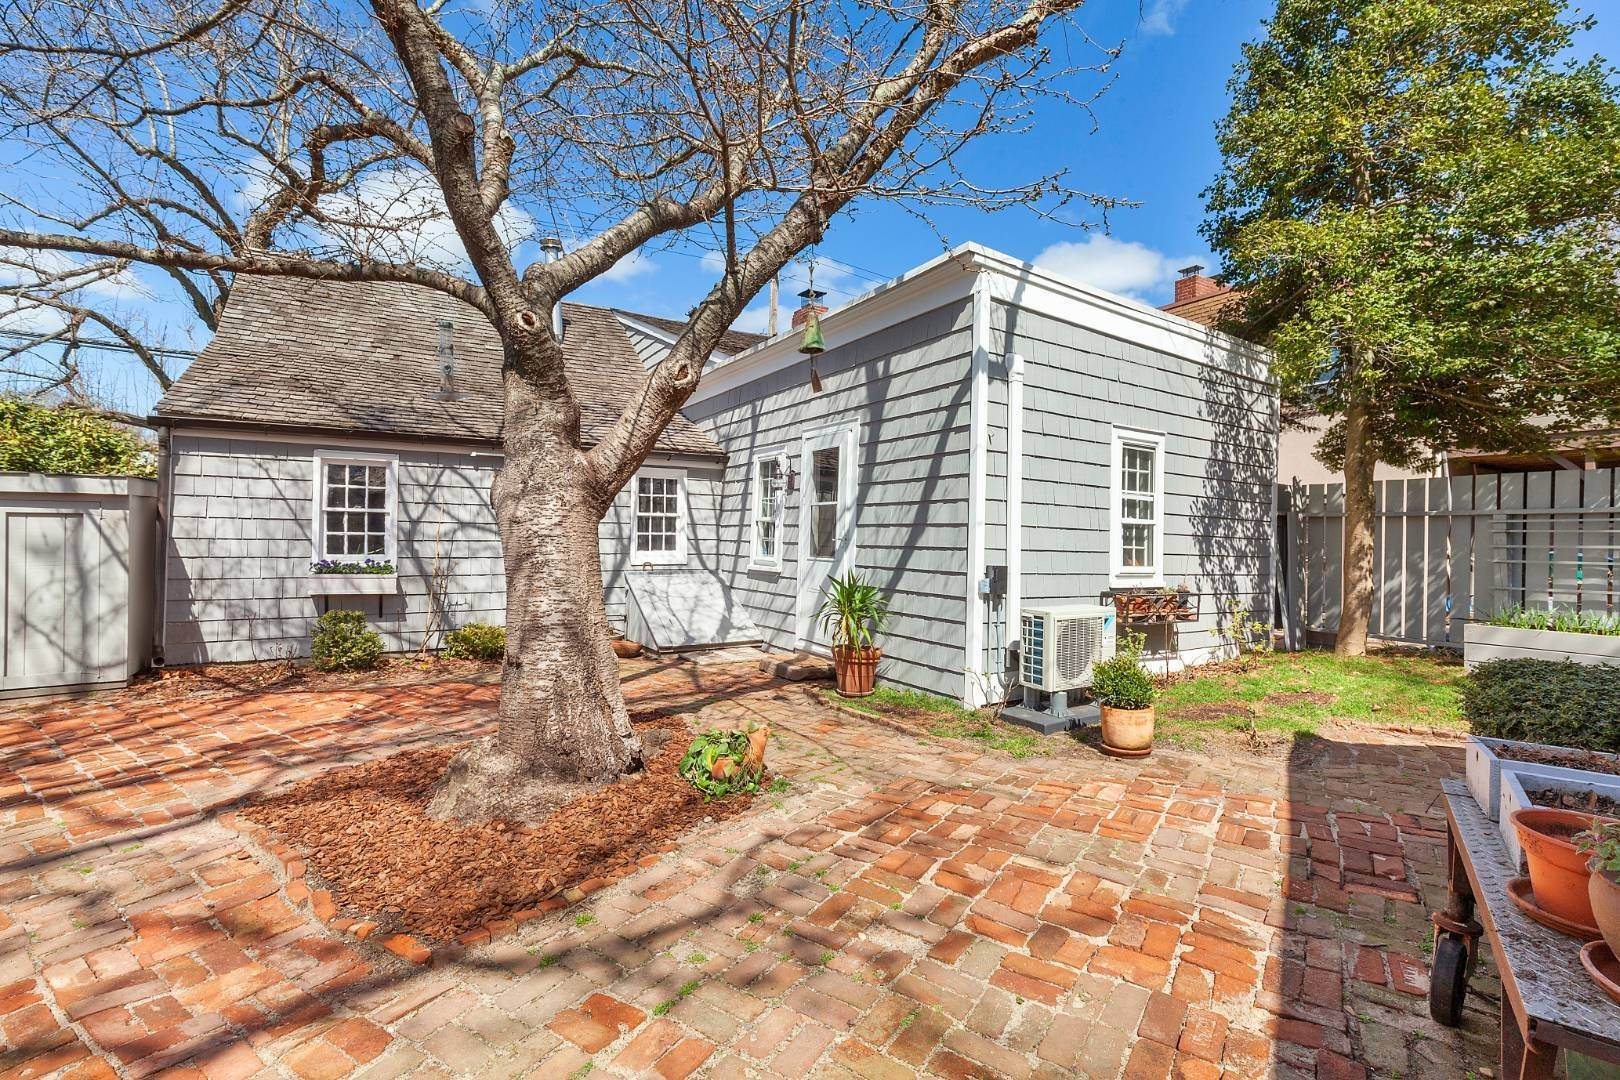 2. Single Family Home for Sale at Sag Harbor, NY 11963